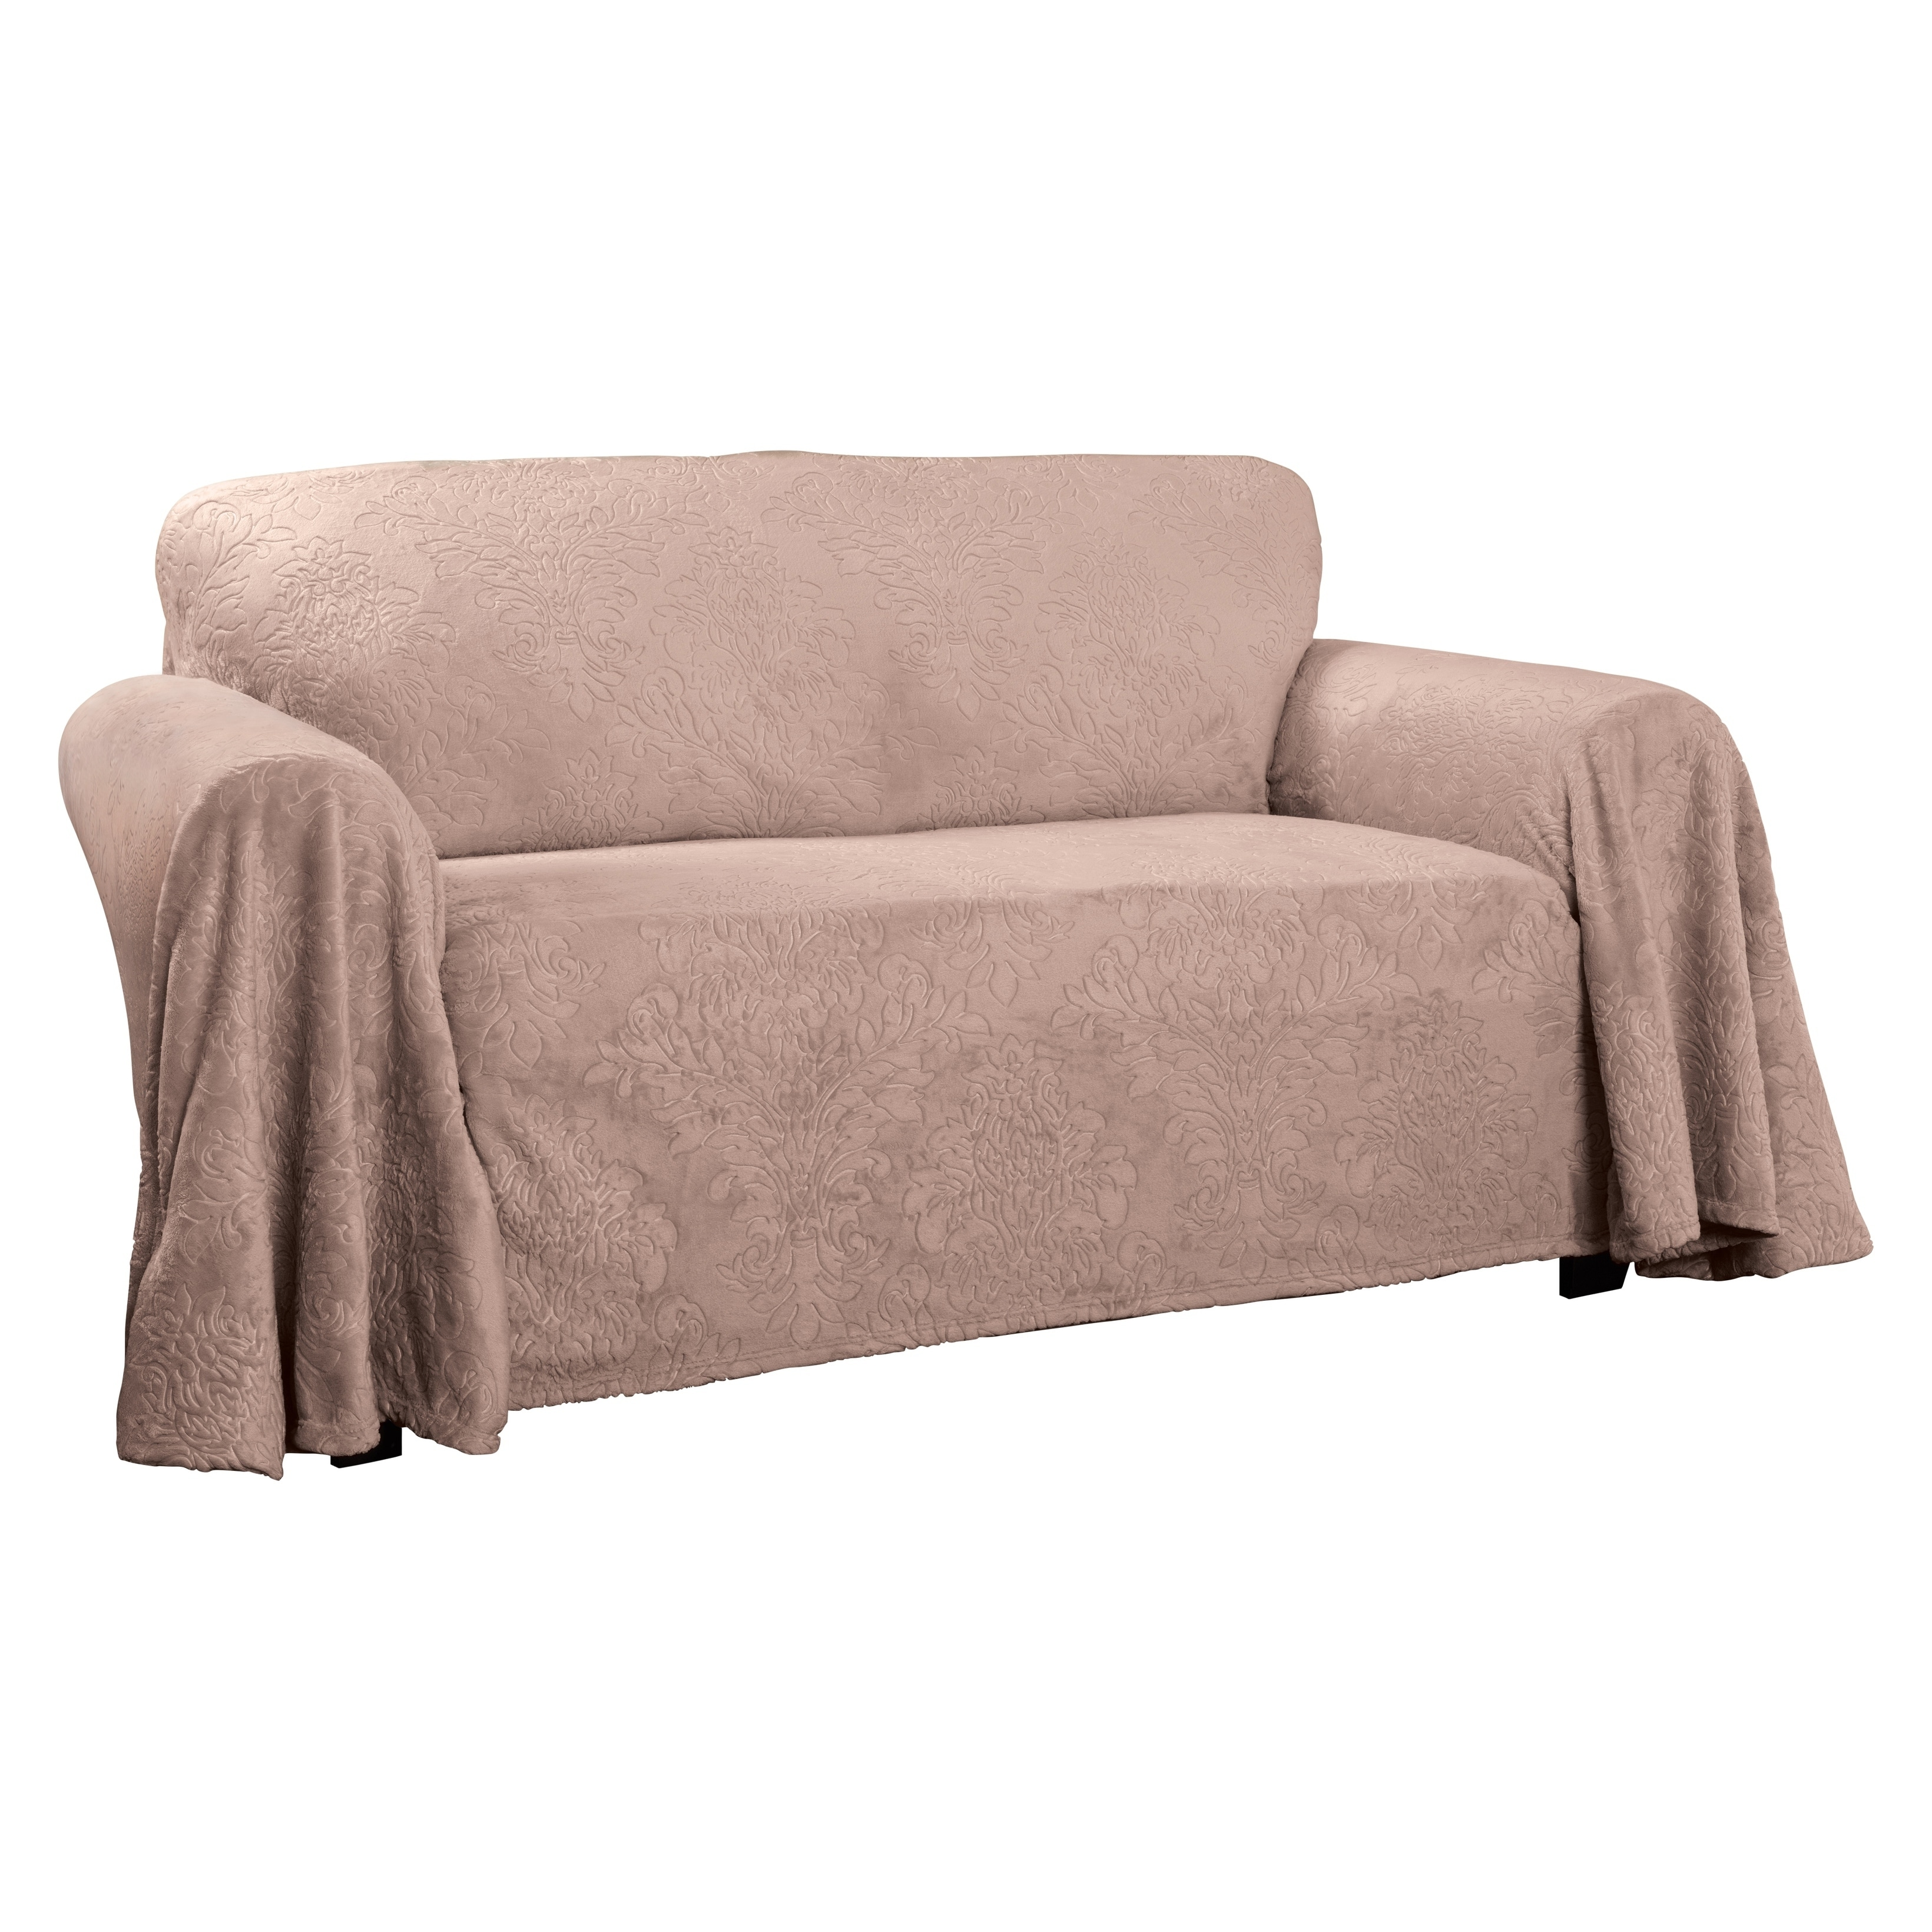 Strange Plush Damask Throw Loveseat Slipcover Caraccident5 Cool Chair Designs And Ideas Caraccident5Info